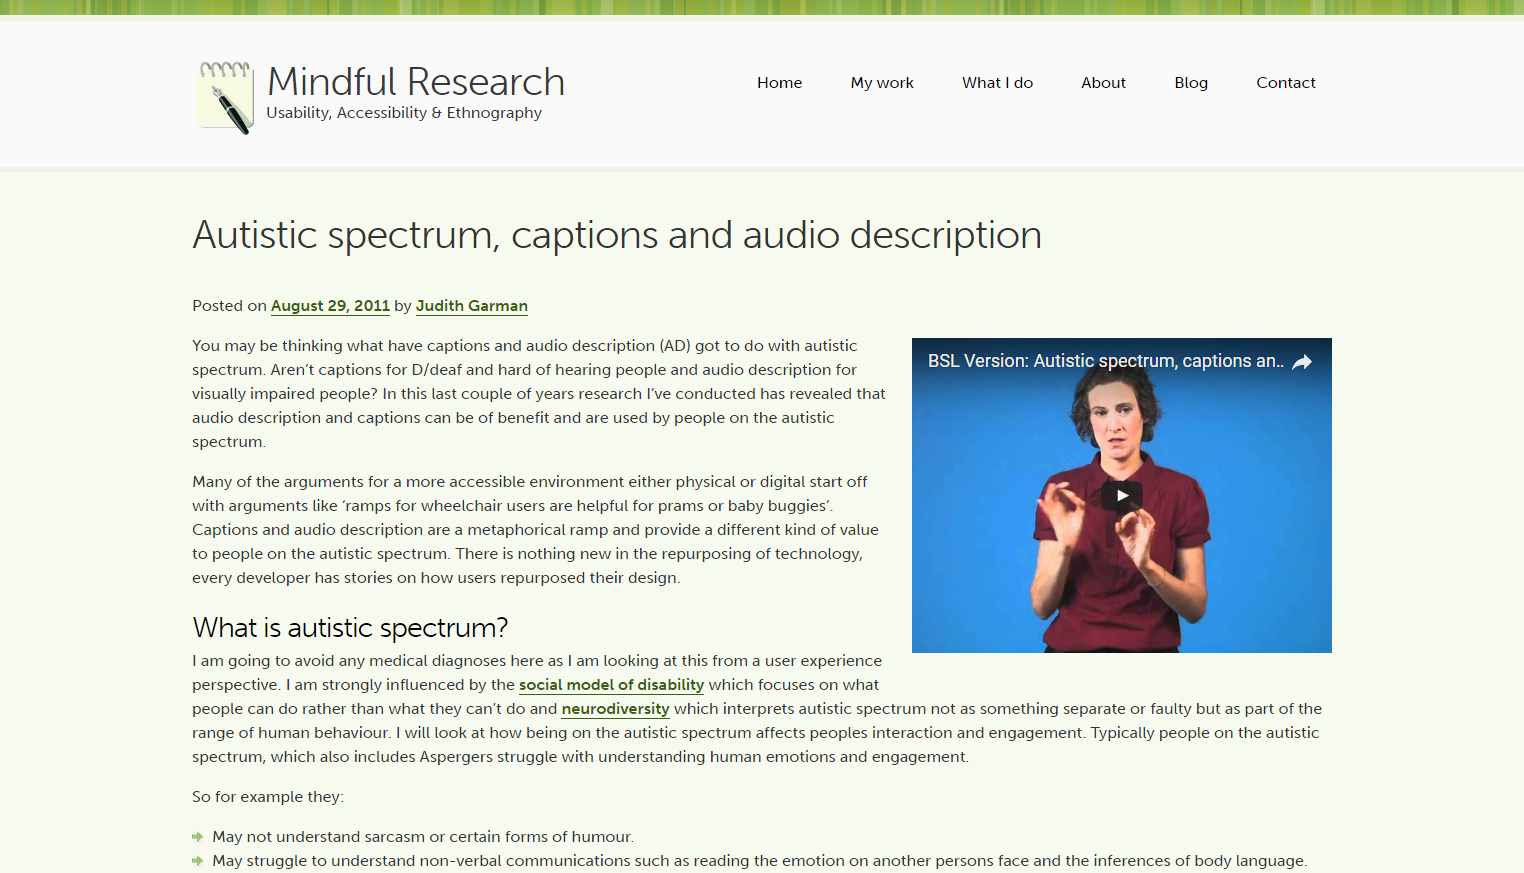 Autistic Spectrum, Captions and Audio Description